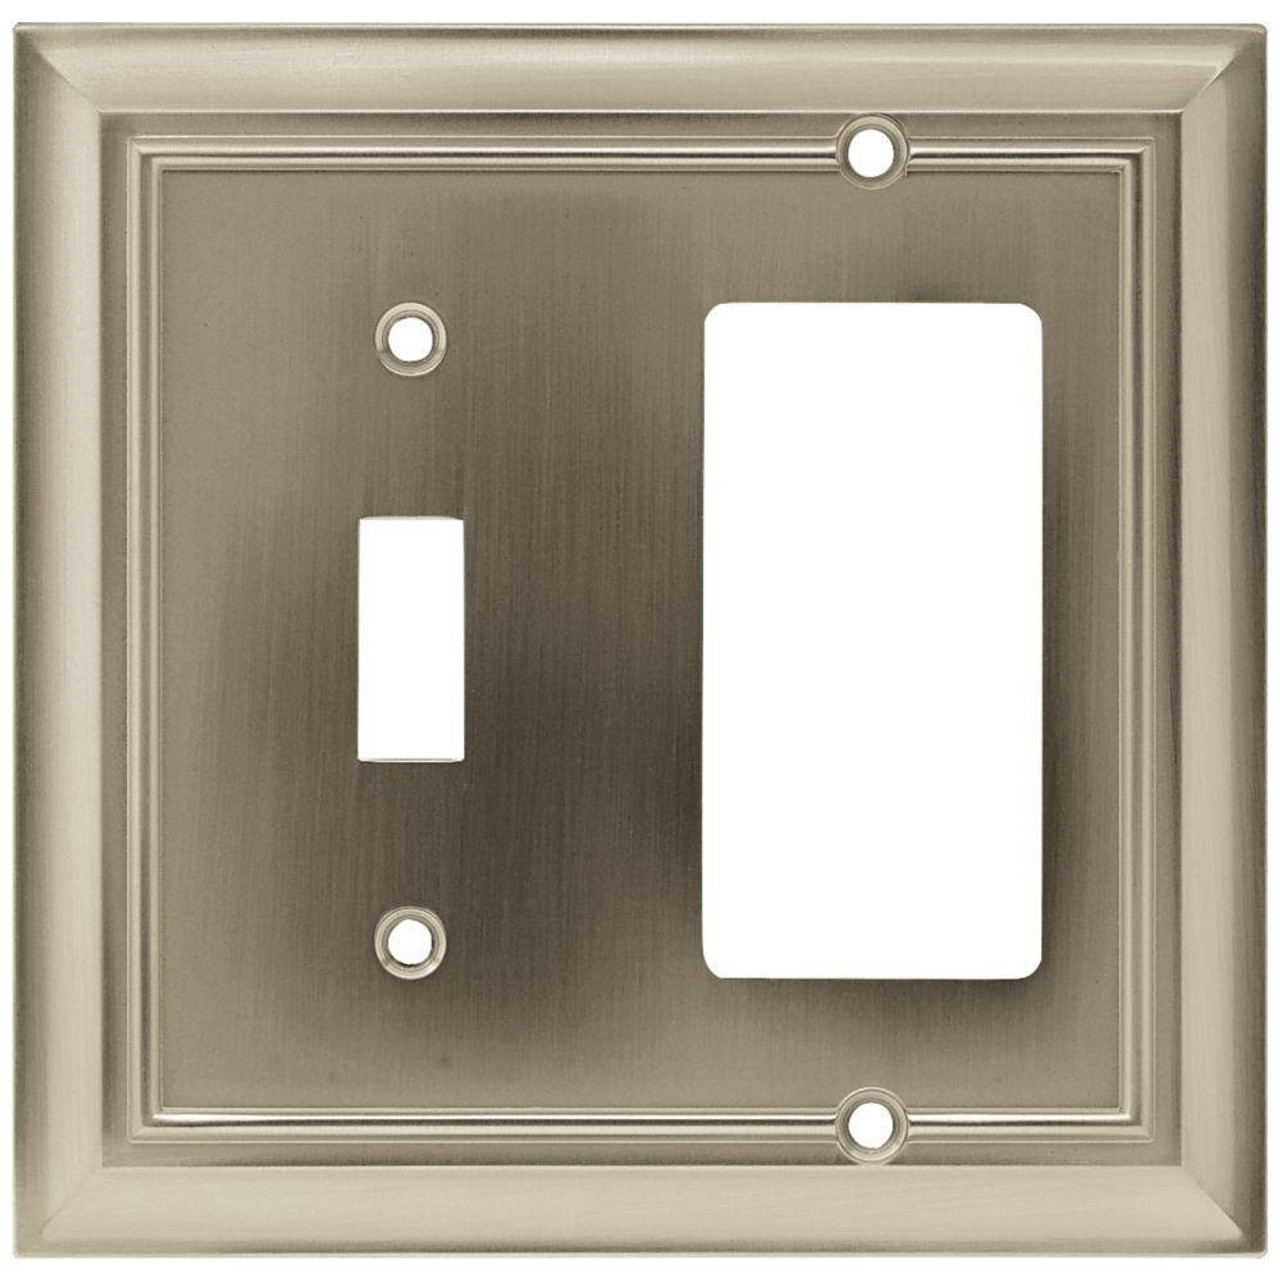 W10601-SN Architect Satin Nickel Switch / GFCI Combo Cover Plate